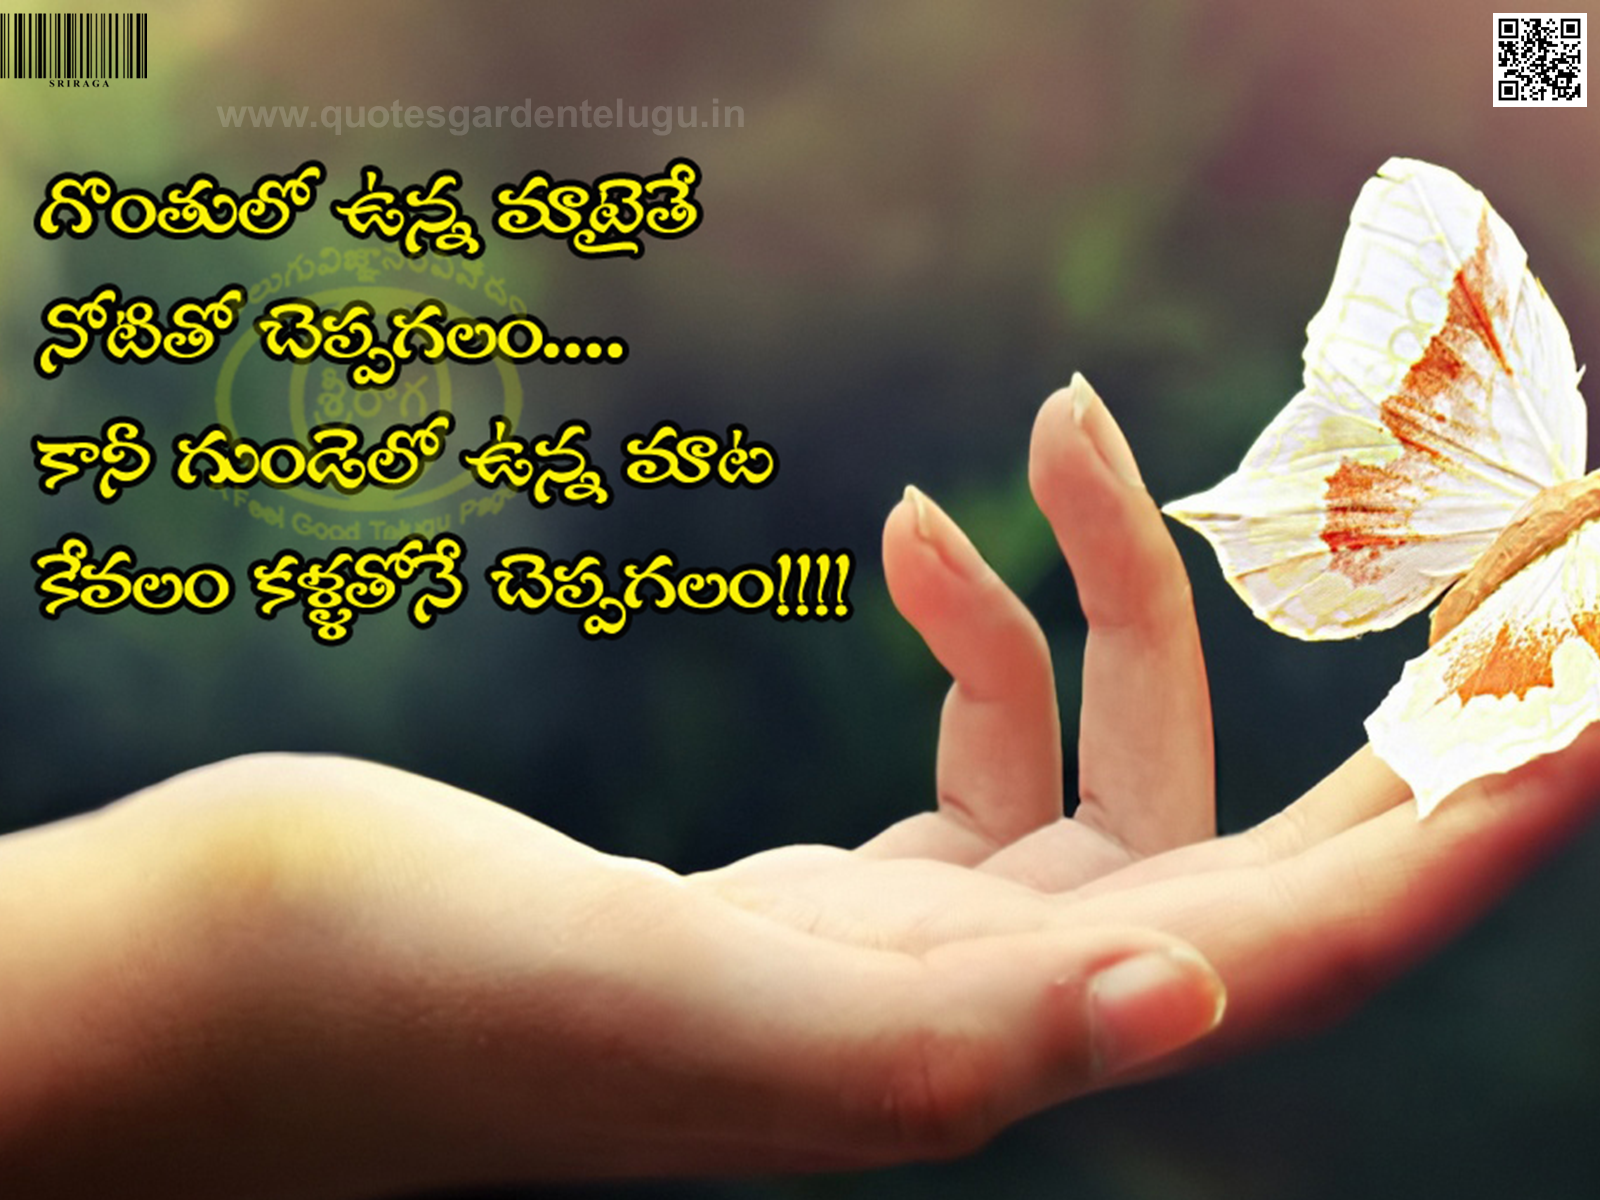 Love Failure Quotes In Telugu Wallpapers